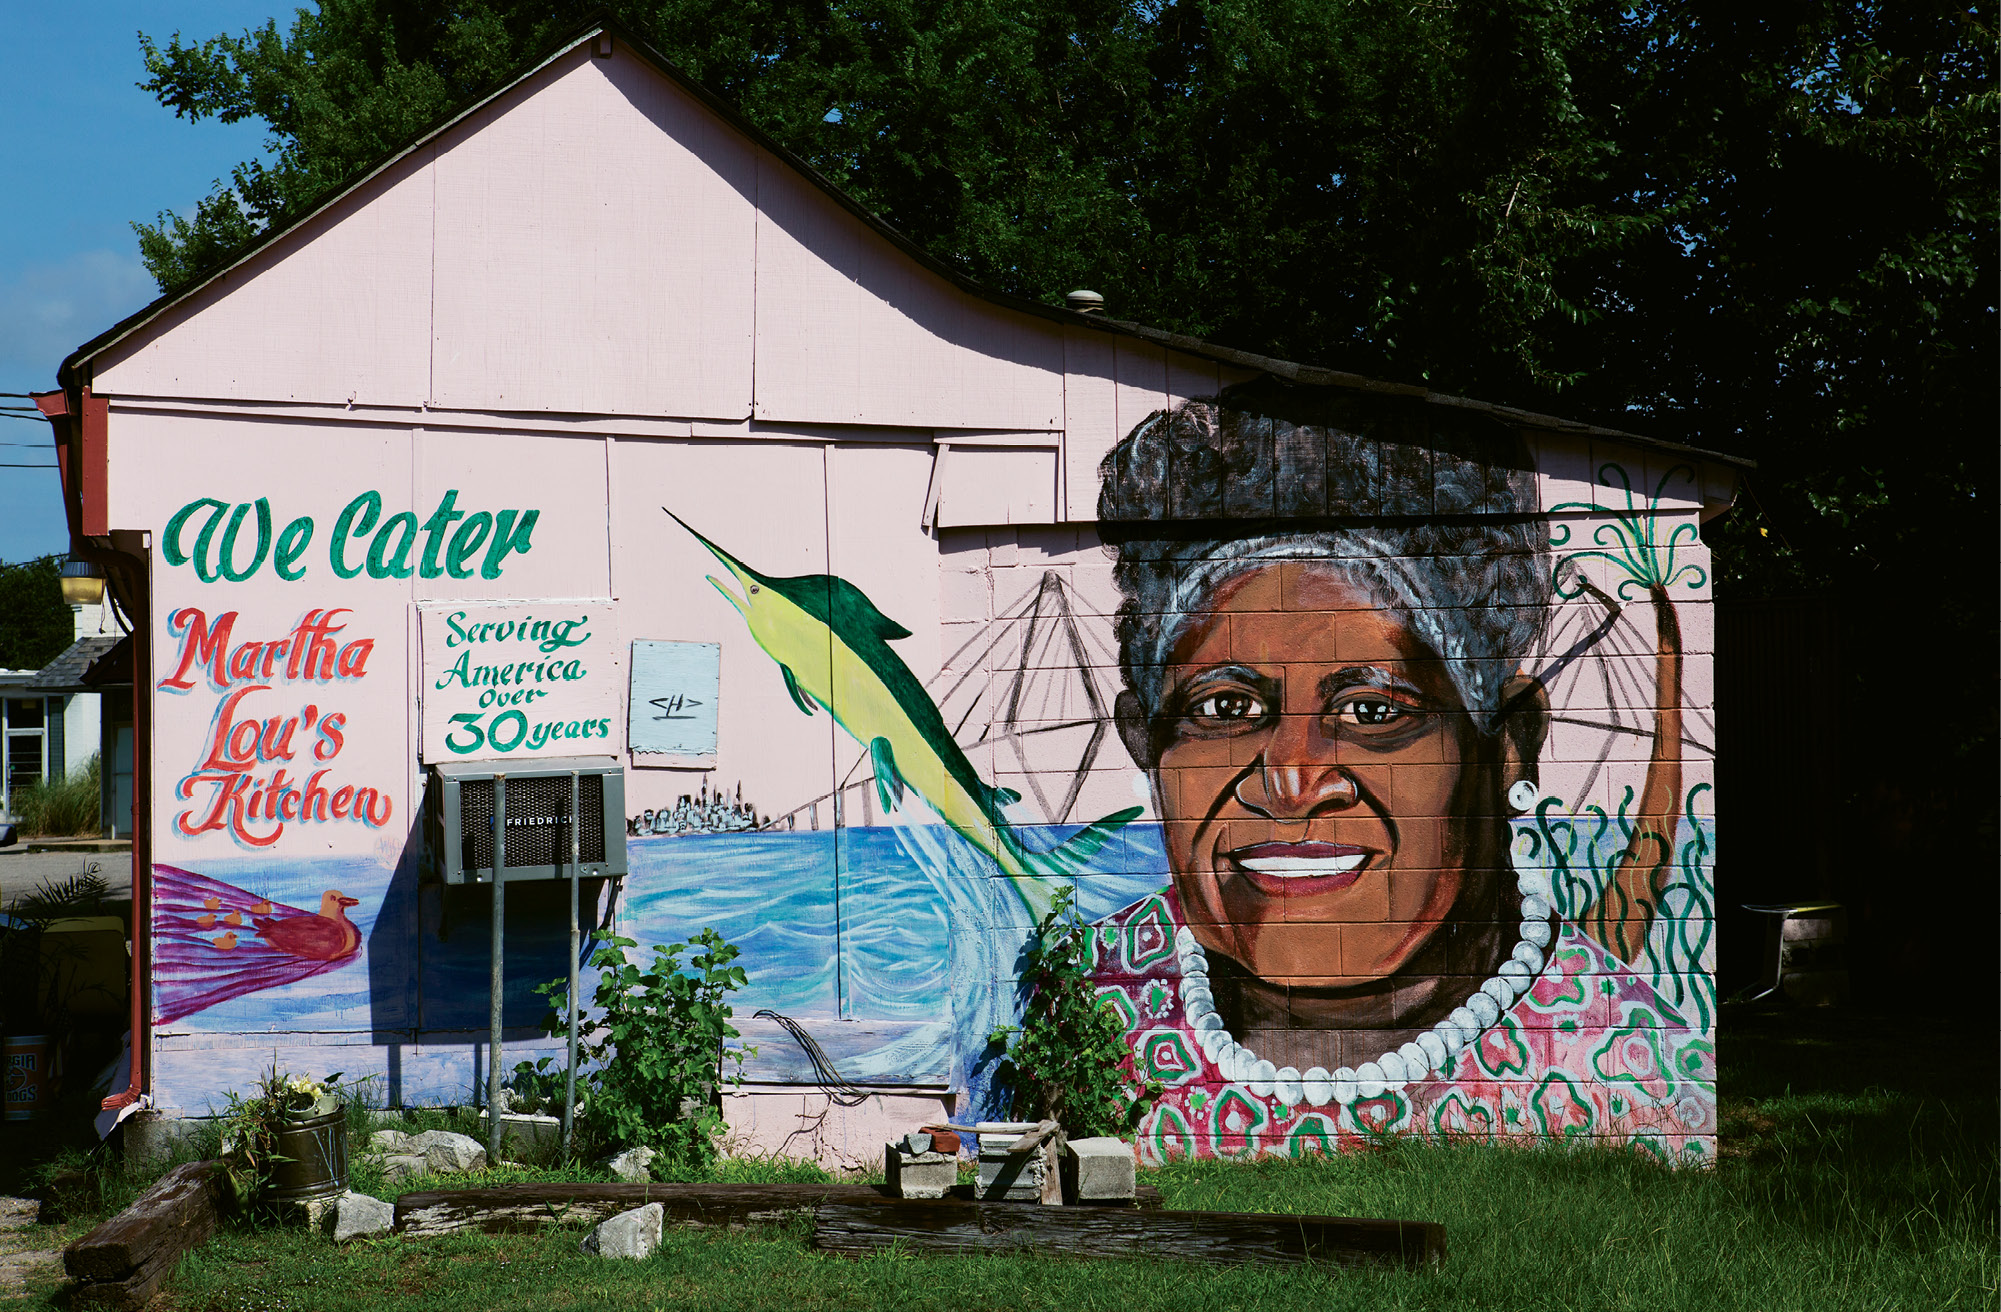 Untitled  by Charles Desaussure  2012  Martha Lou's Kitchen  (1068 Morrison dr., Peninsula)  for decades, locals and visitors alike have sought out the famous pink cinder-block building for the addictive fried chicken inside. in 2012, the colorful exterior got an upgrade, an immense portrait of Martha Lou herself, painted by late Lowcountry artist Charles Desaussure, who passed away the following year. His work can be found on and in many area businesses, including Ravenel Seafood and Red Piano Too Art Gallery in St. Helena.